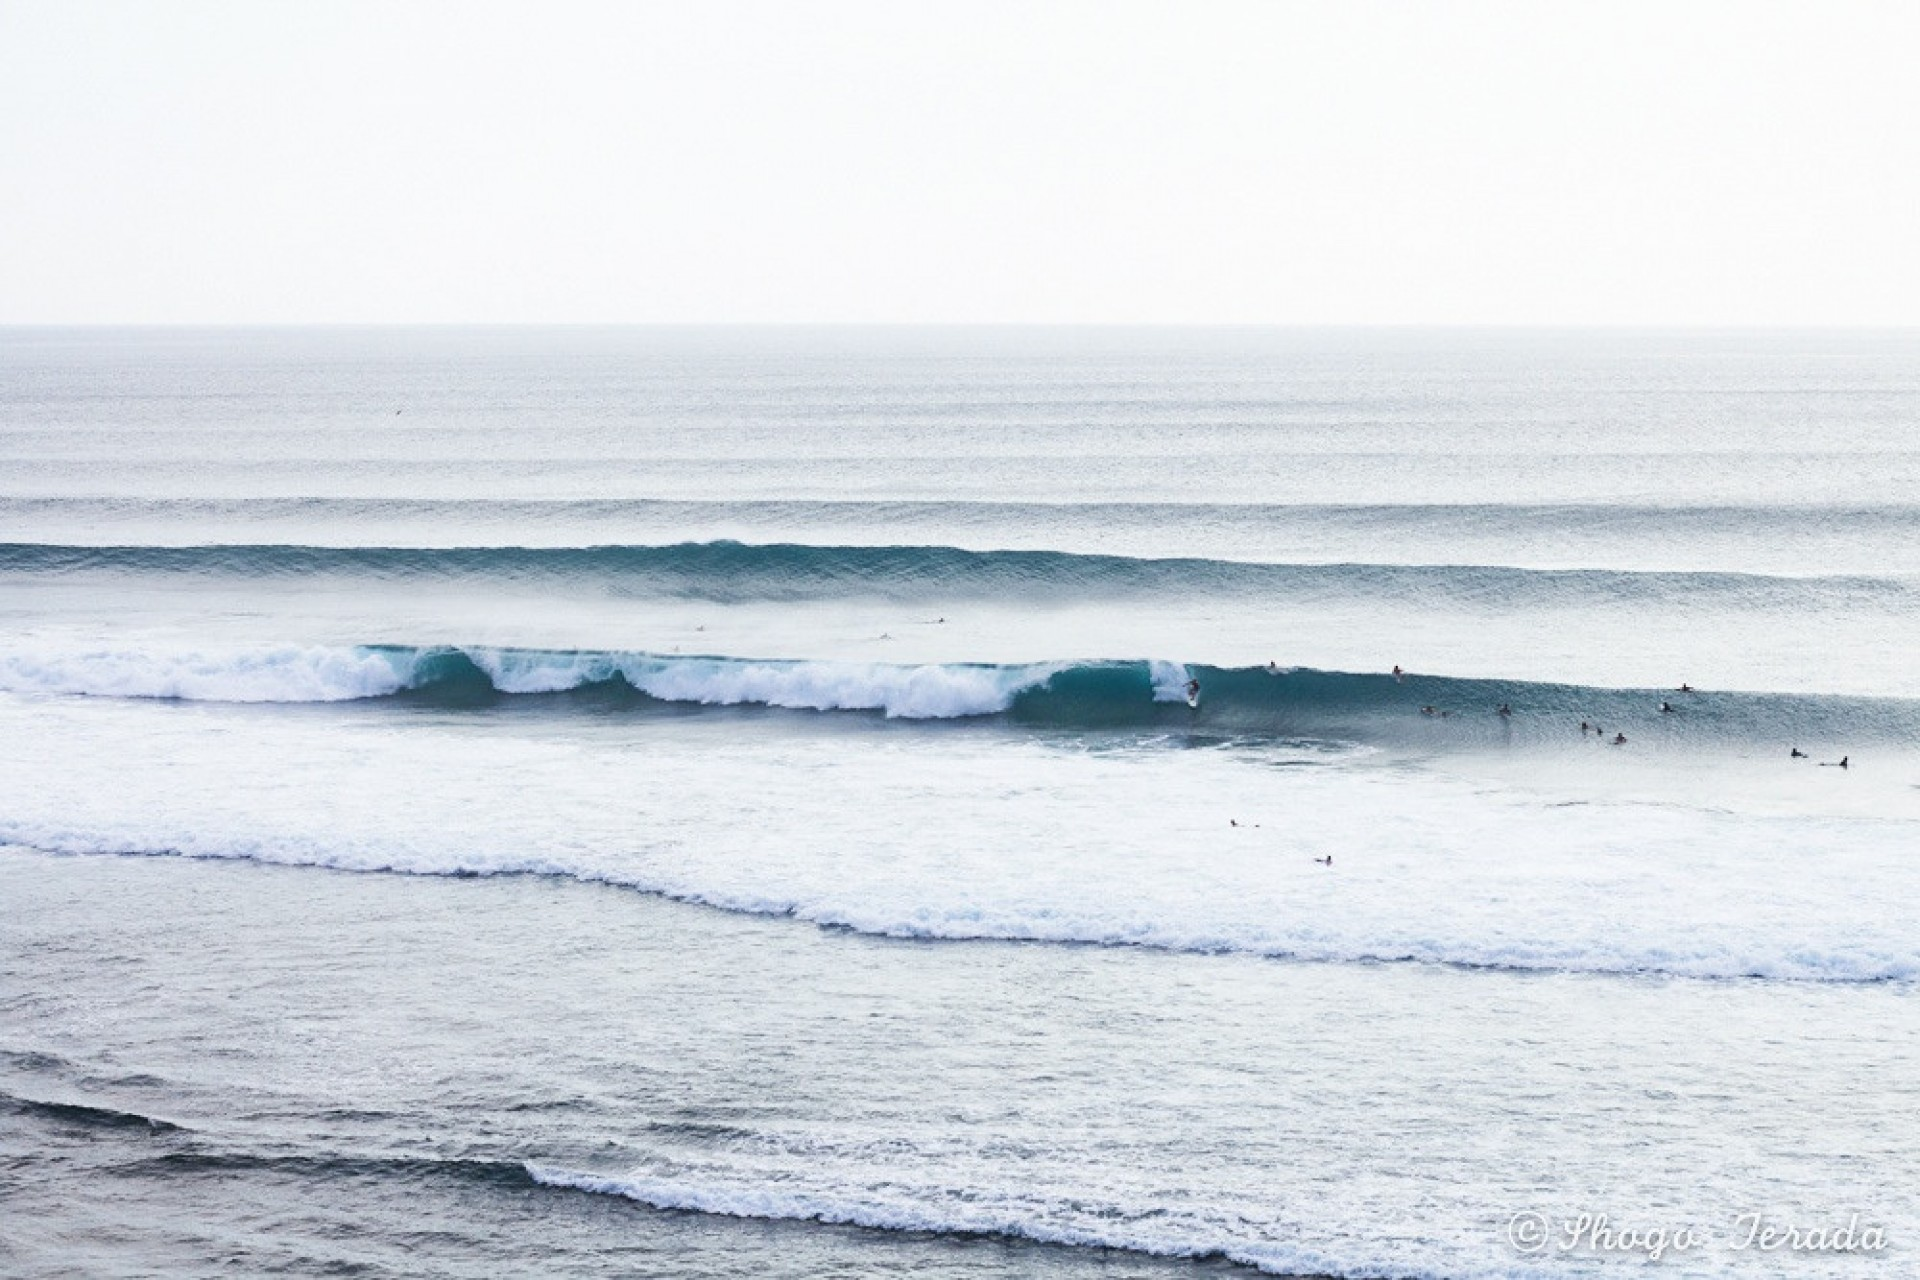 shogo's photo of Uluwatu